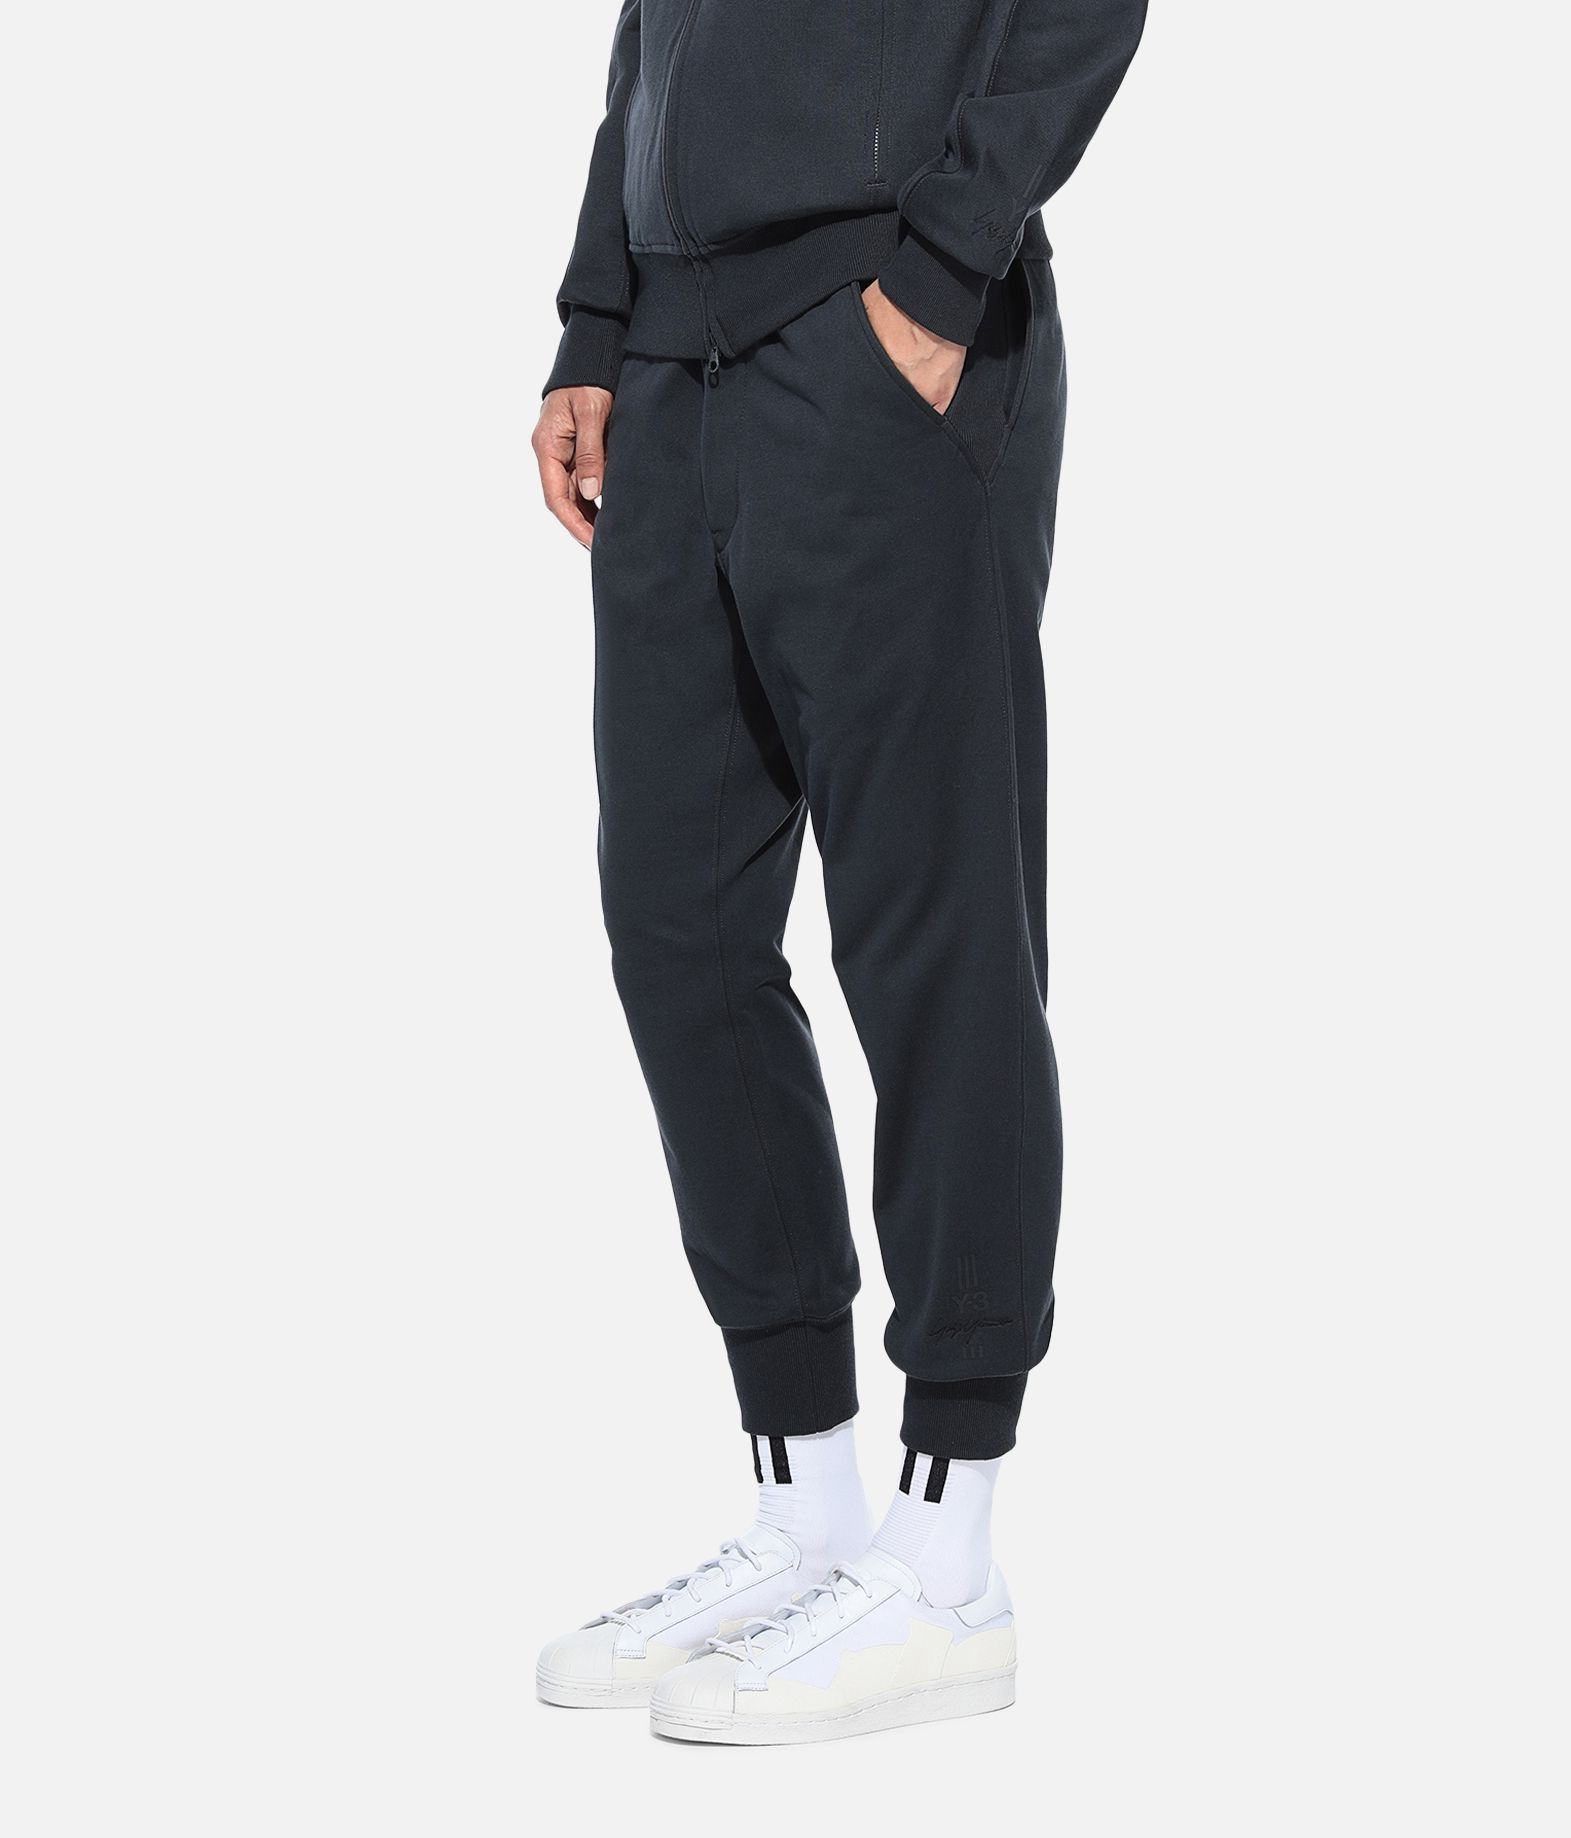 Y-3 Y-3 Classic Cuffed Pants Fleece-Hose Damen e